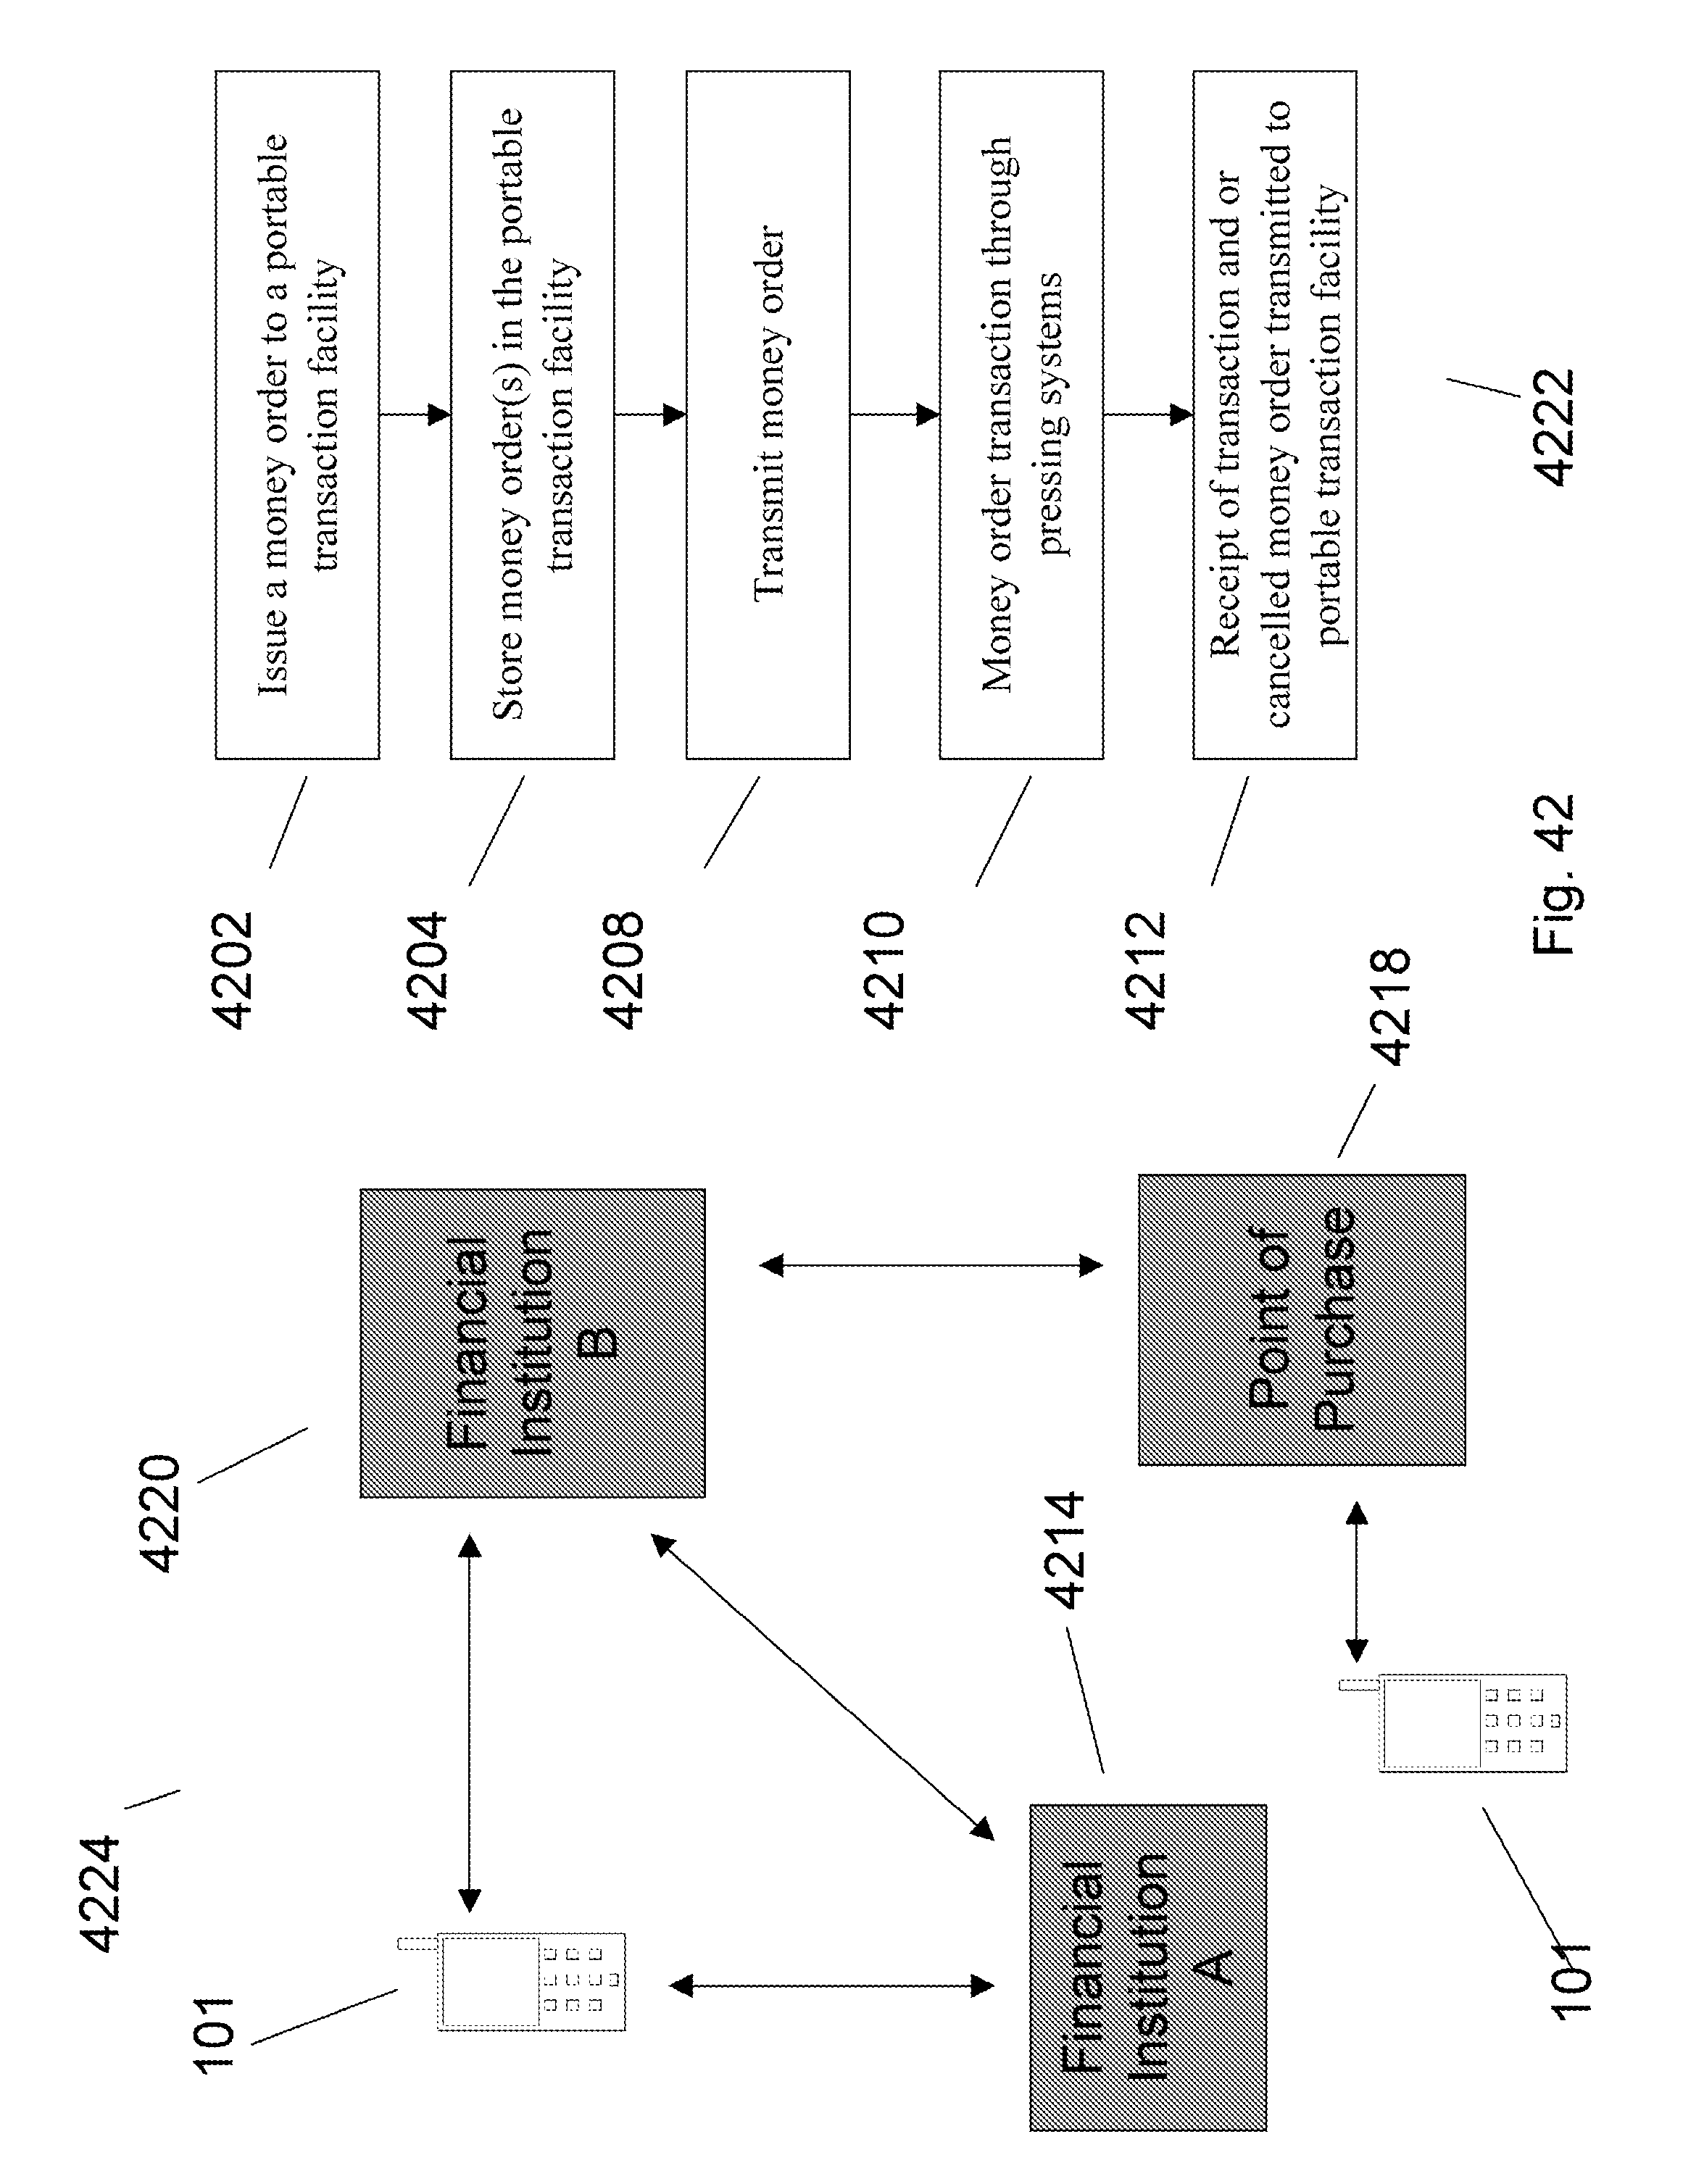 Patent US 20070198432A1 on